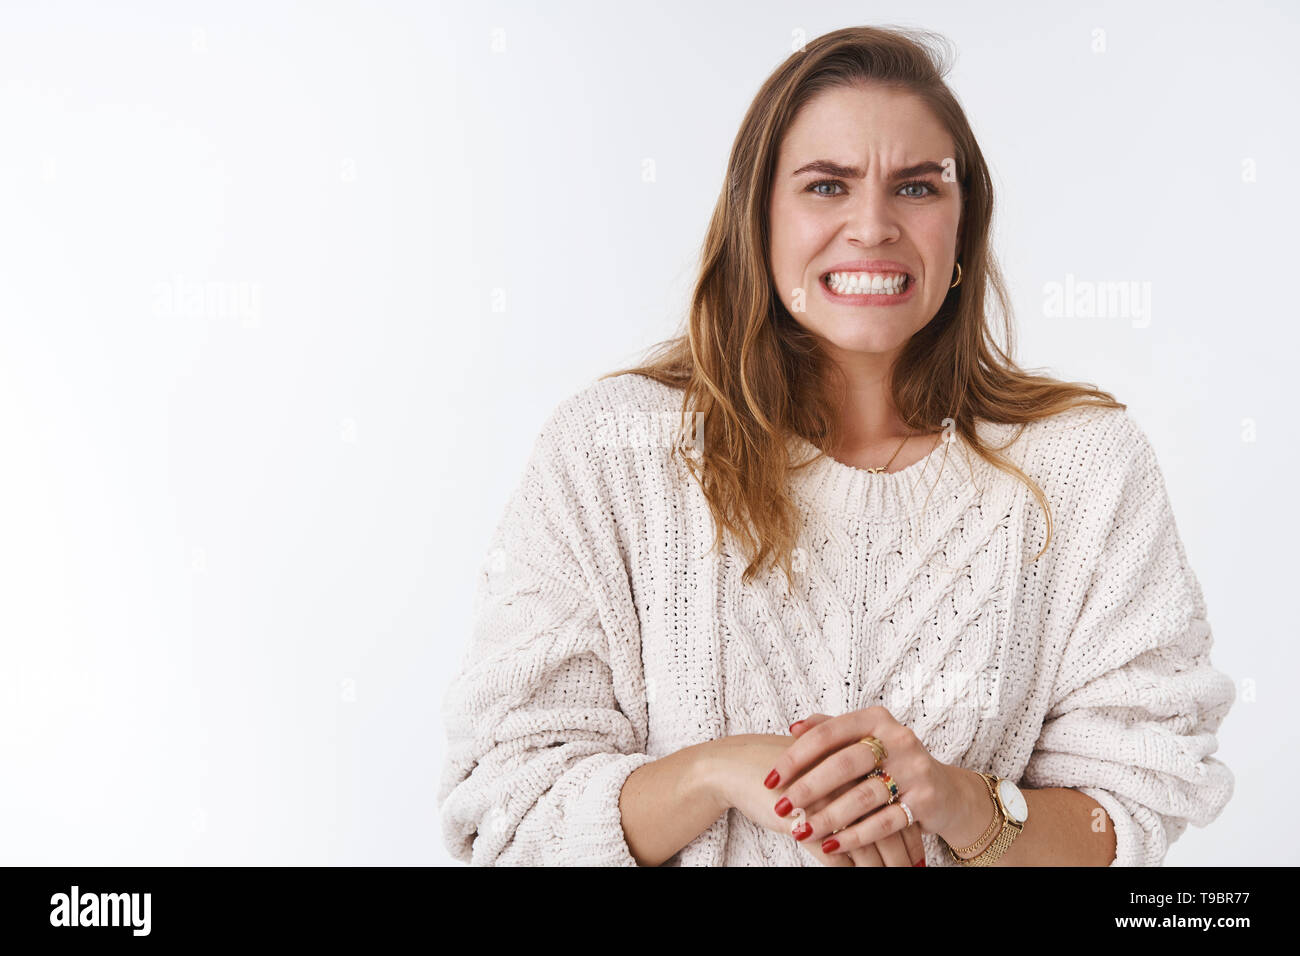 Woman feeling awkward intense feeling problems, making huge mistake worrying grimacing wrinkle nose clenching teeth stooping guilty, nervously - Stock Image